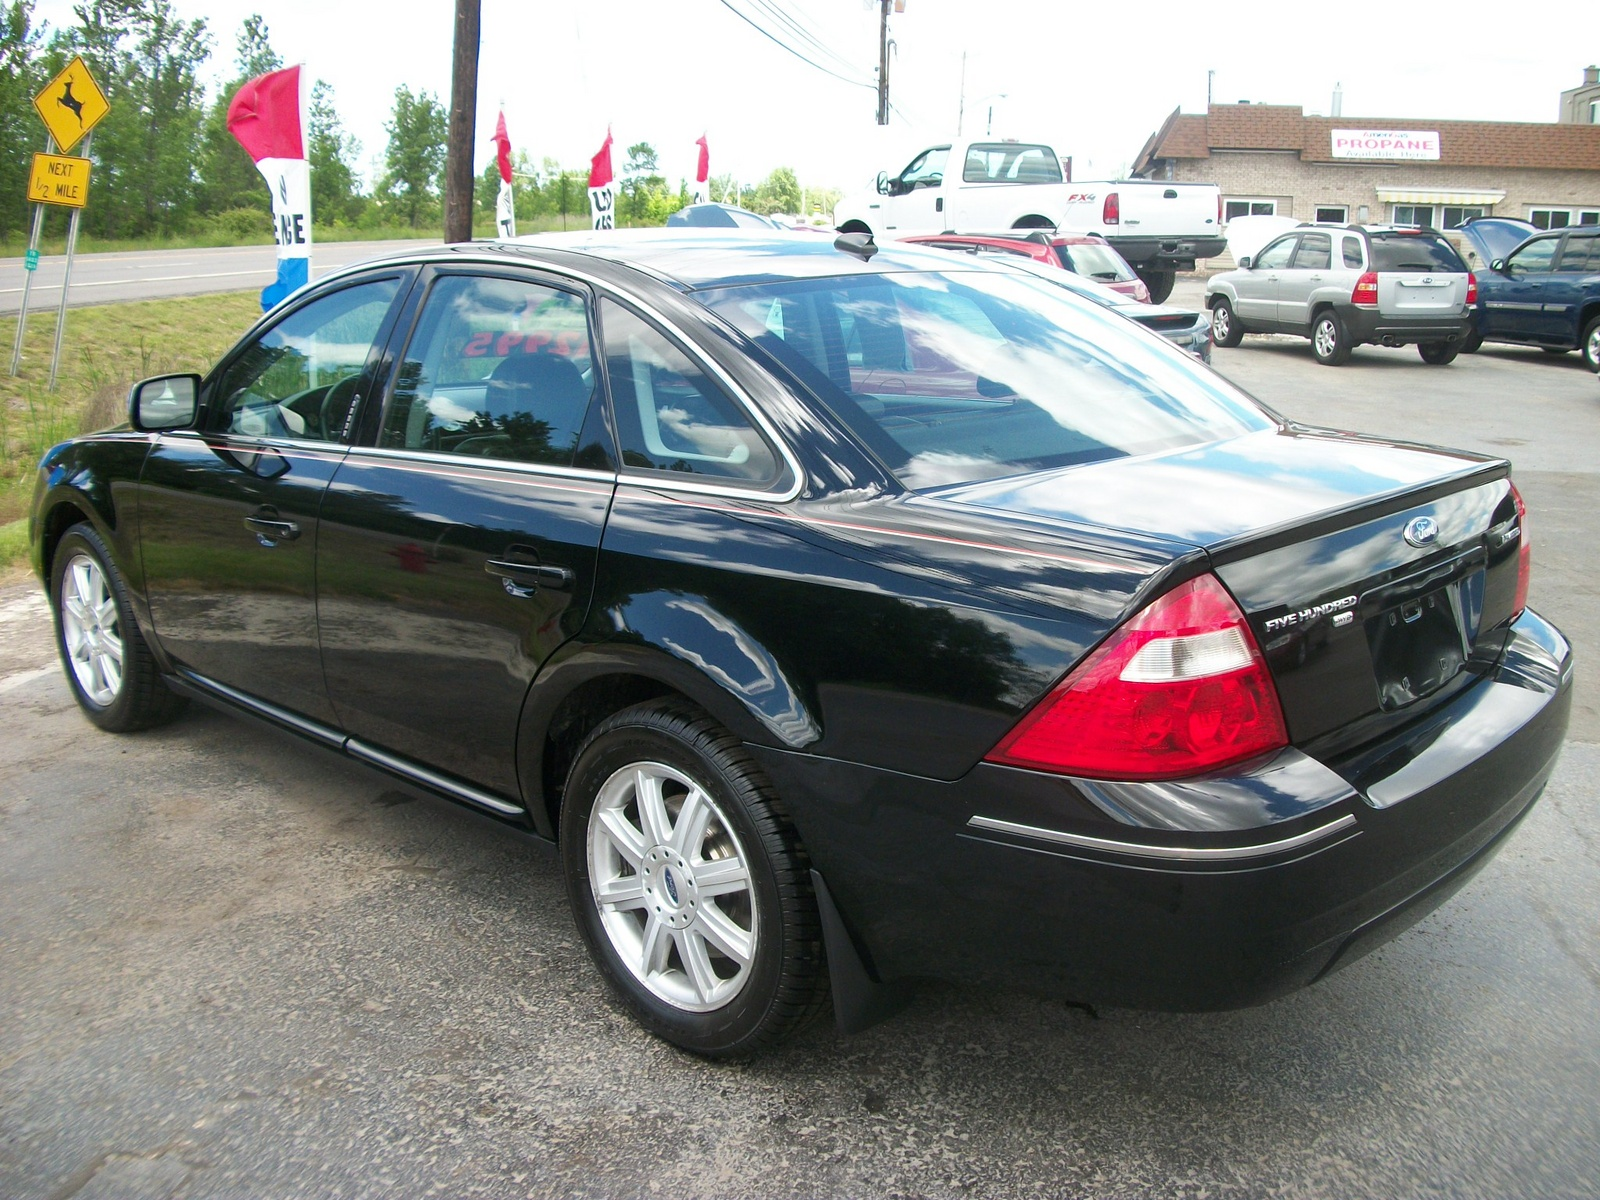 Ford five-hundred 2007 photo - 9